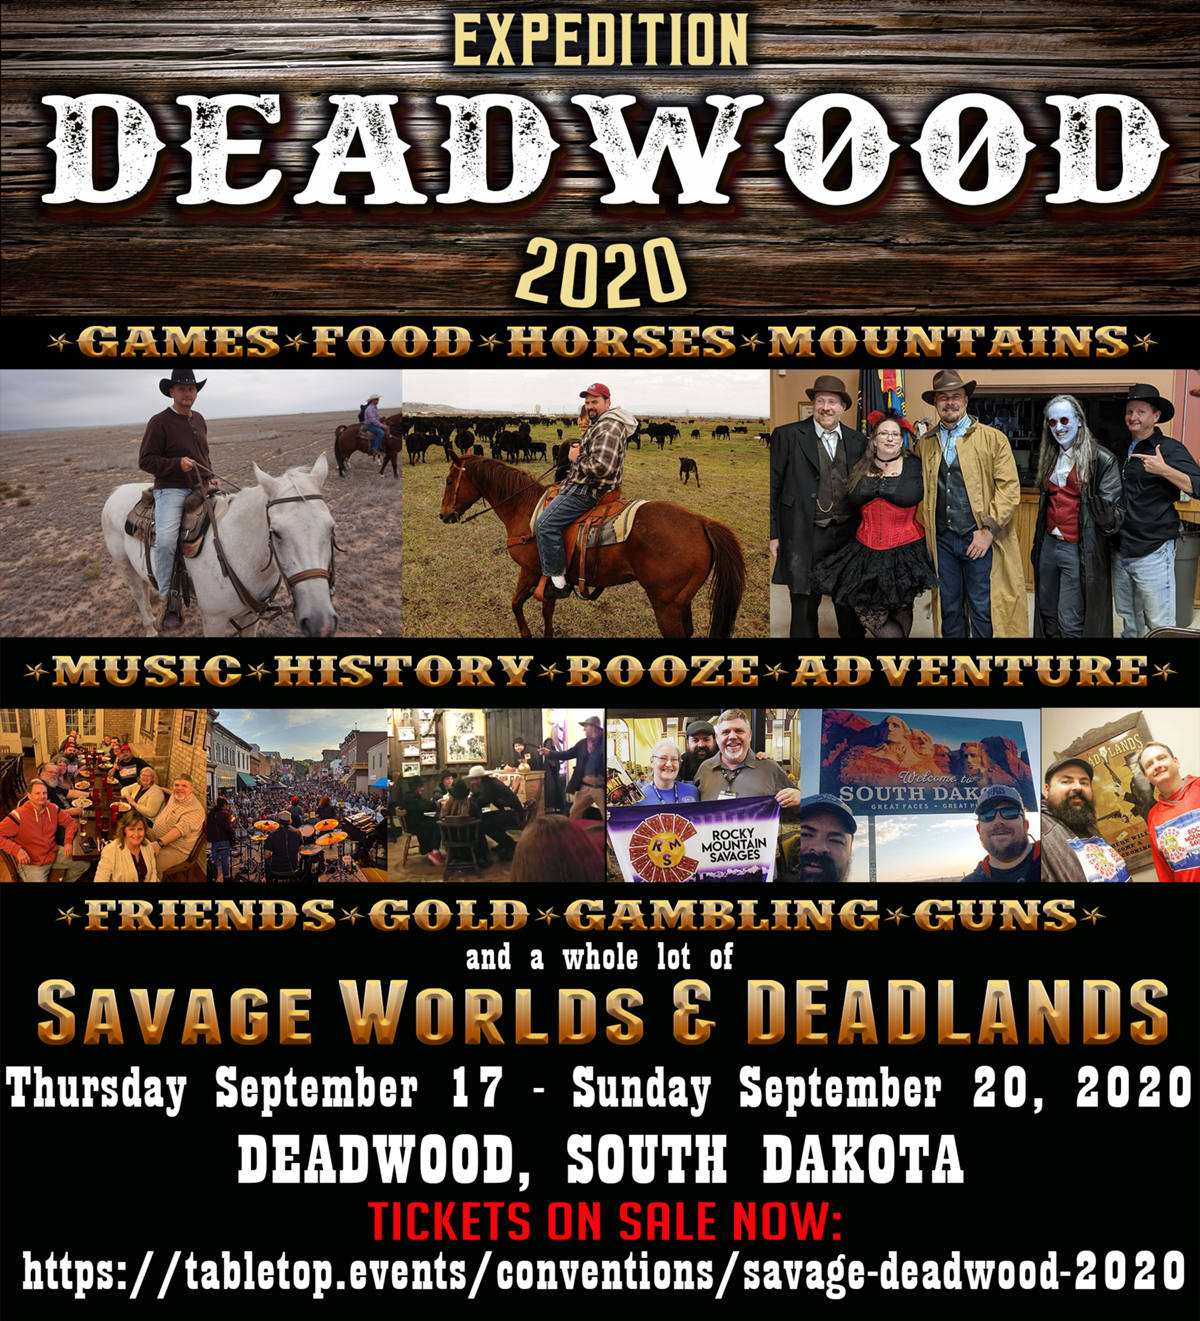 Expedition_Deadwood_KS_ad.png